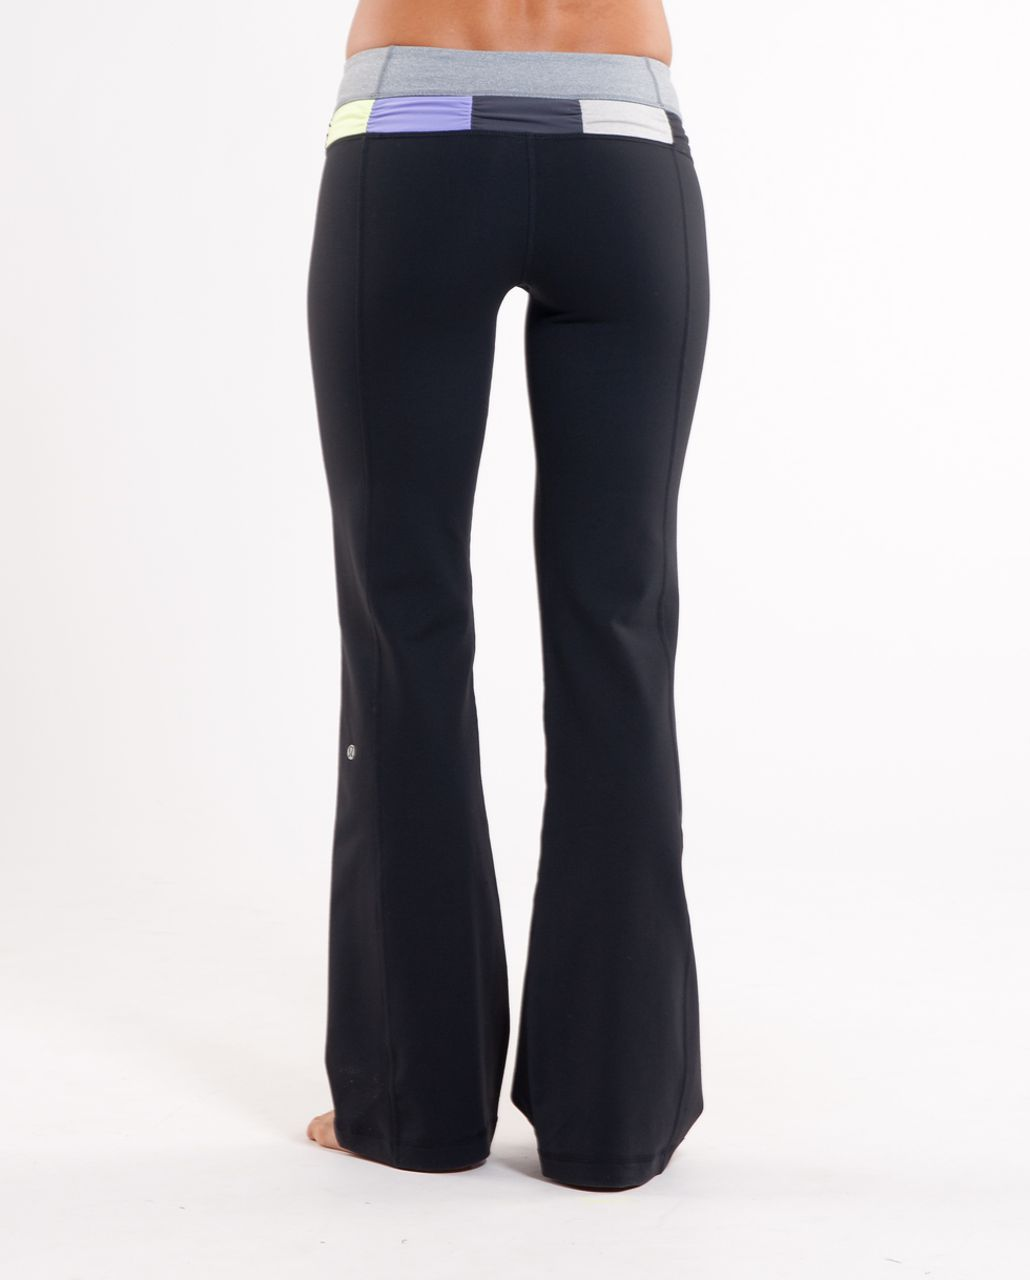 Lululemon Groove Pant (Tall) - Black /  Heathered Blurred Grey /  Quilt Summer 10